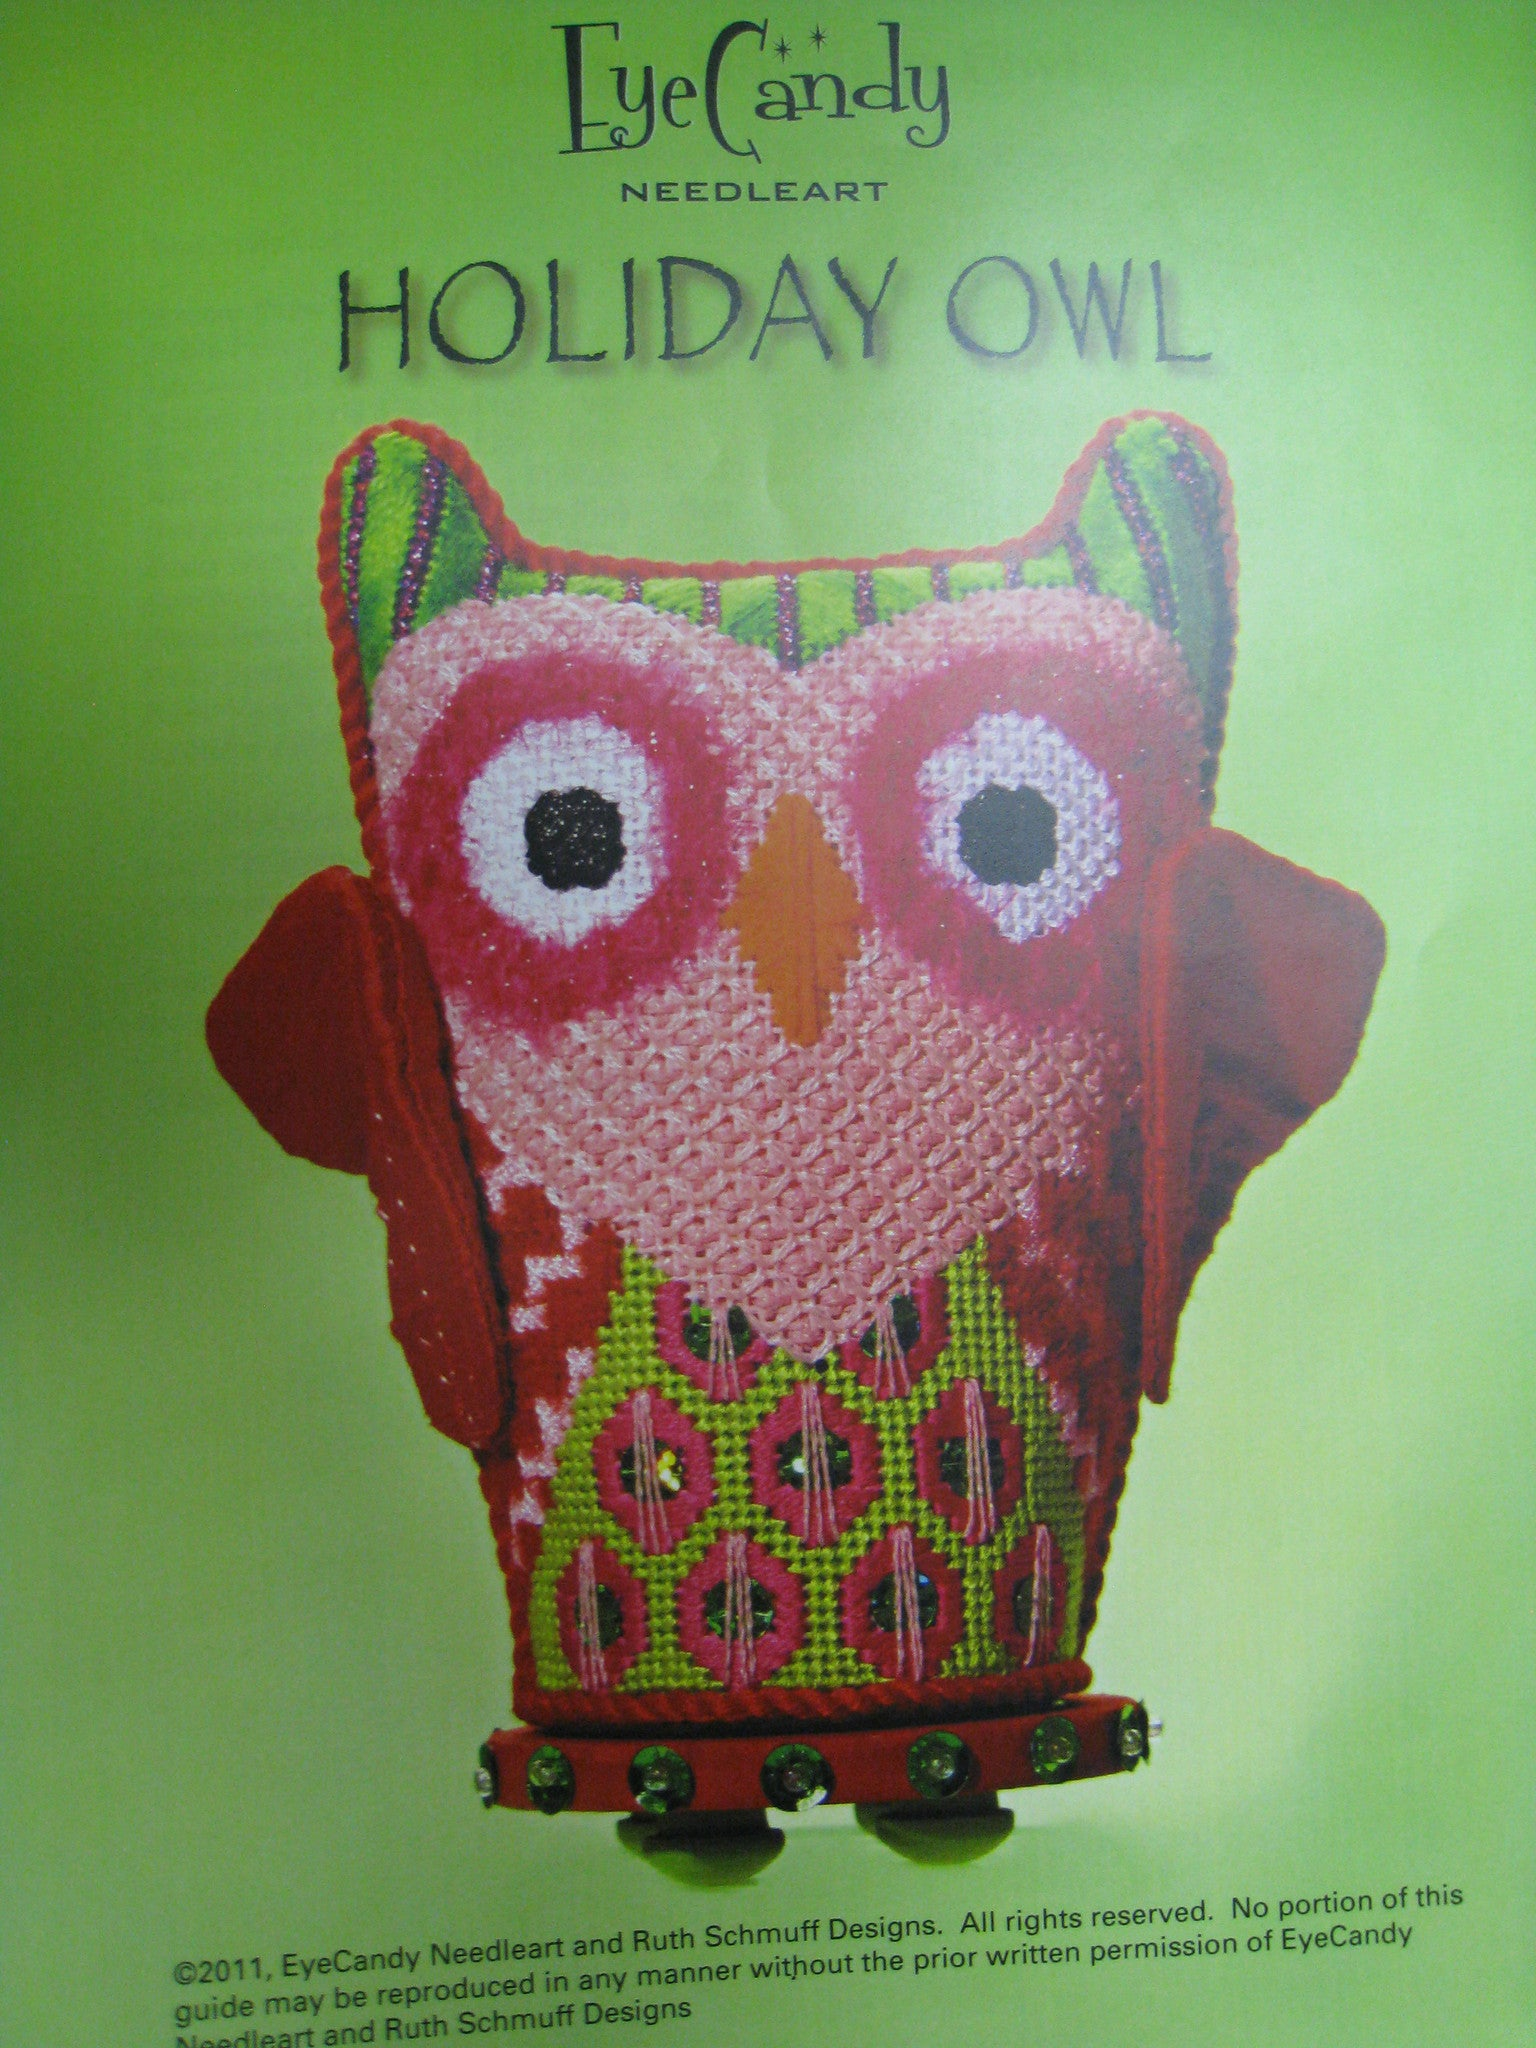 Holiday Owl by Eyecandy